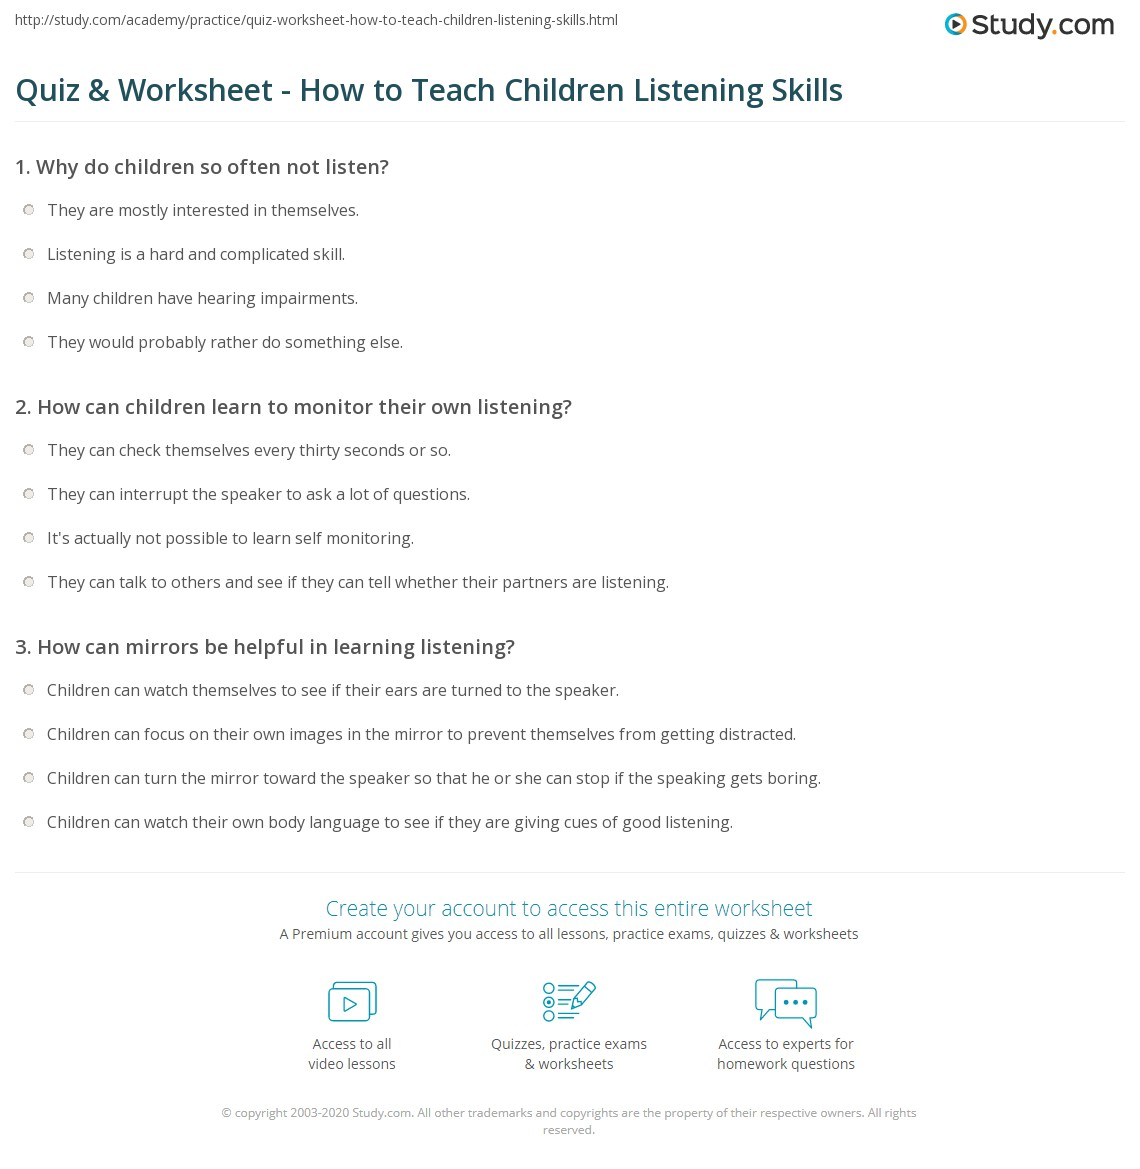 worksheet Active Listening Skills Worksheets listening skills worksheets abitlikethis quiz amp worksheet how to teach children study com